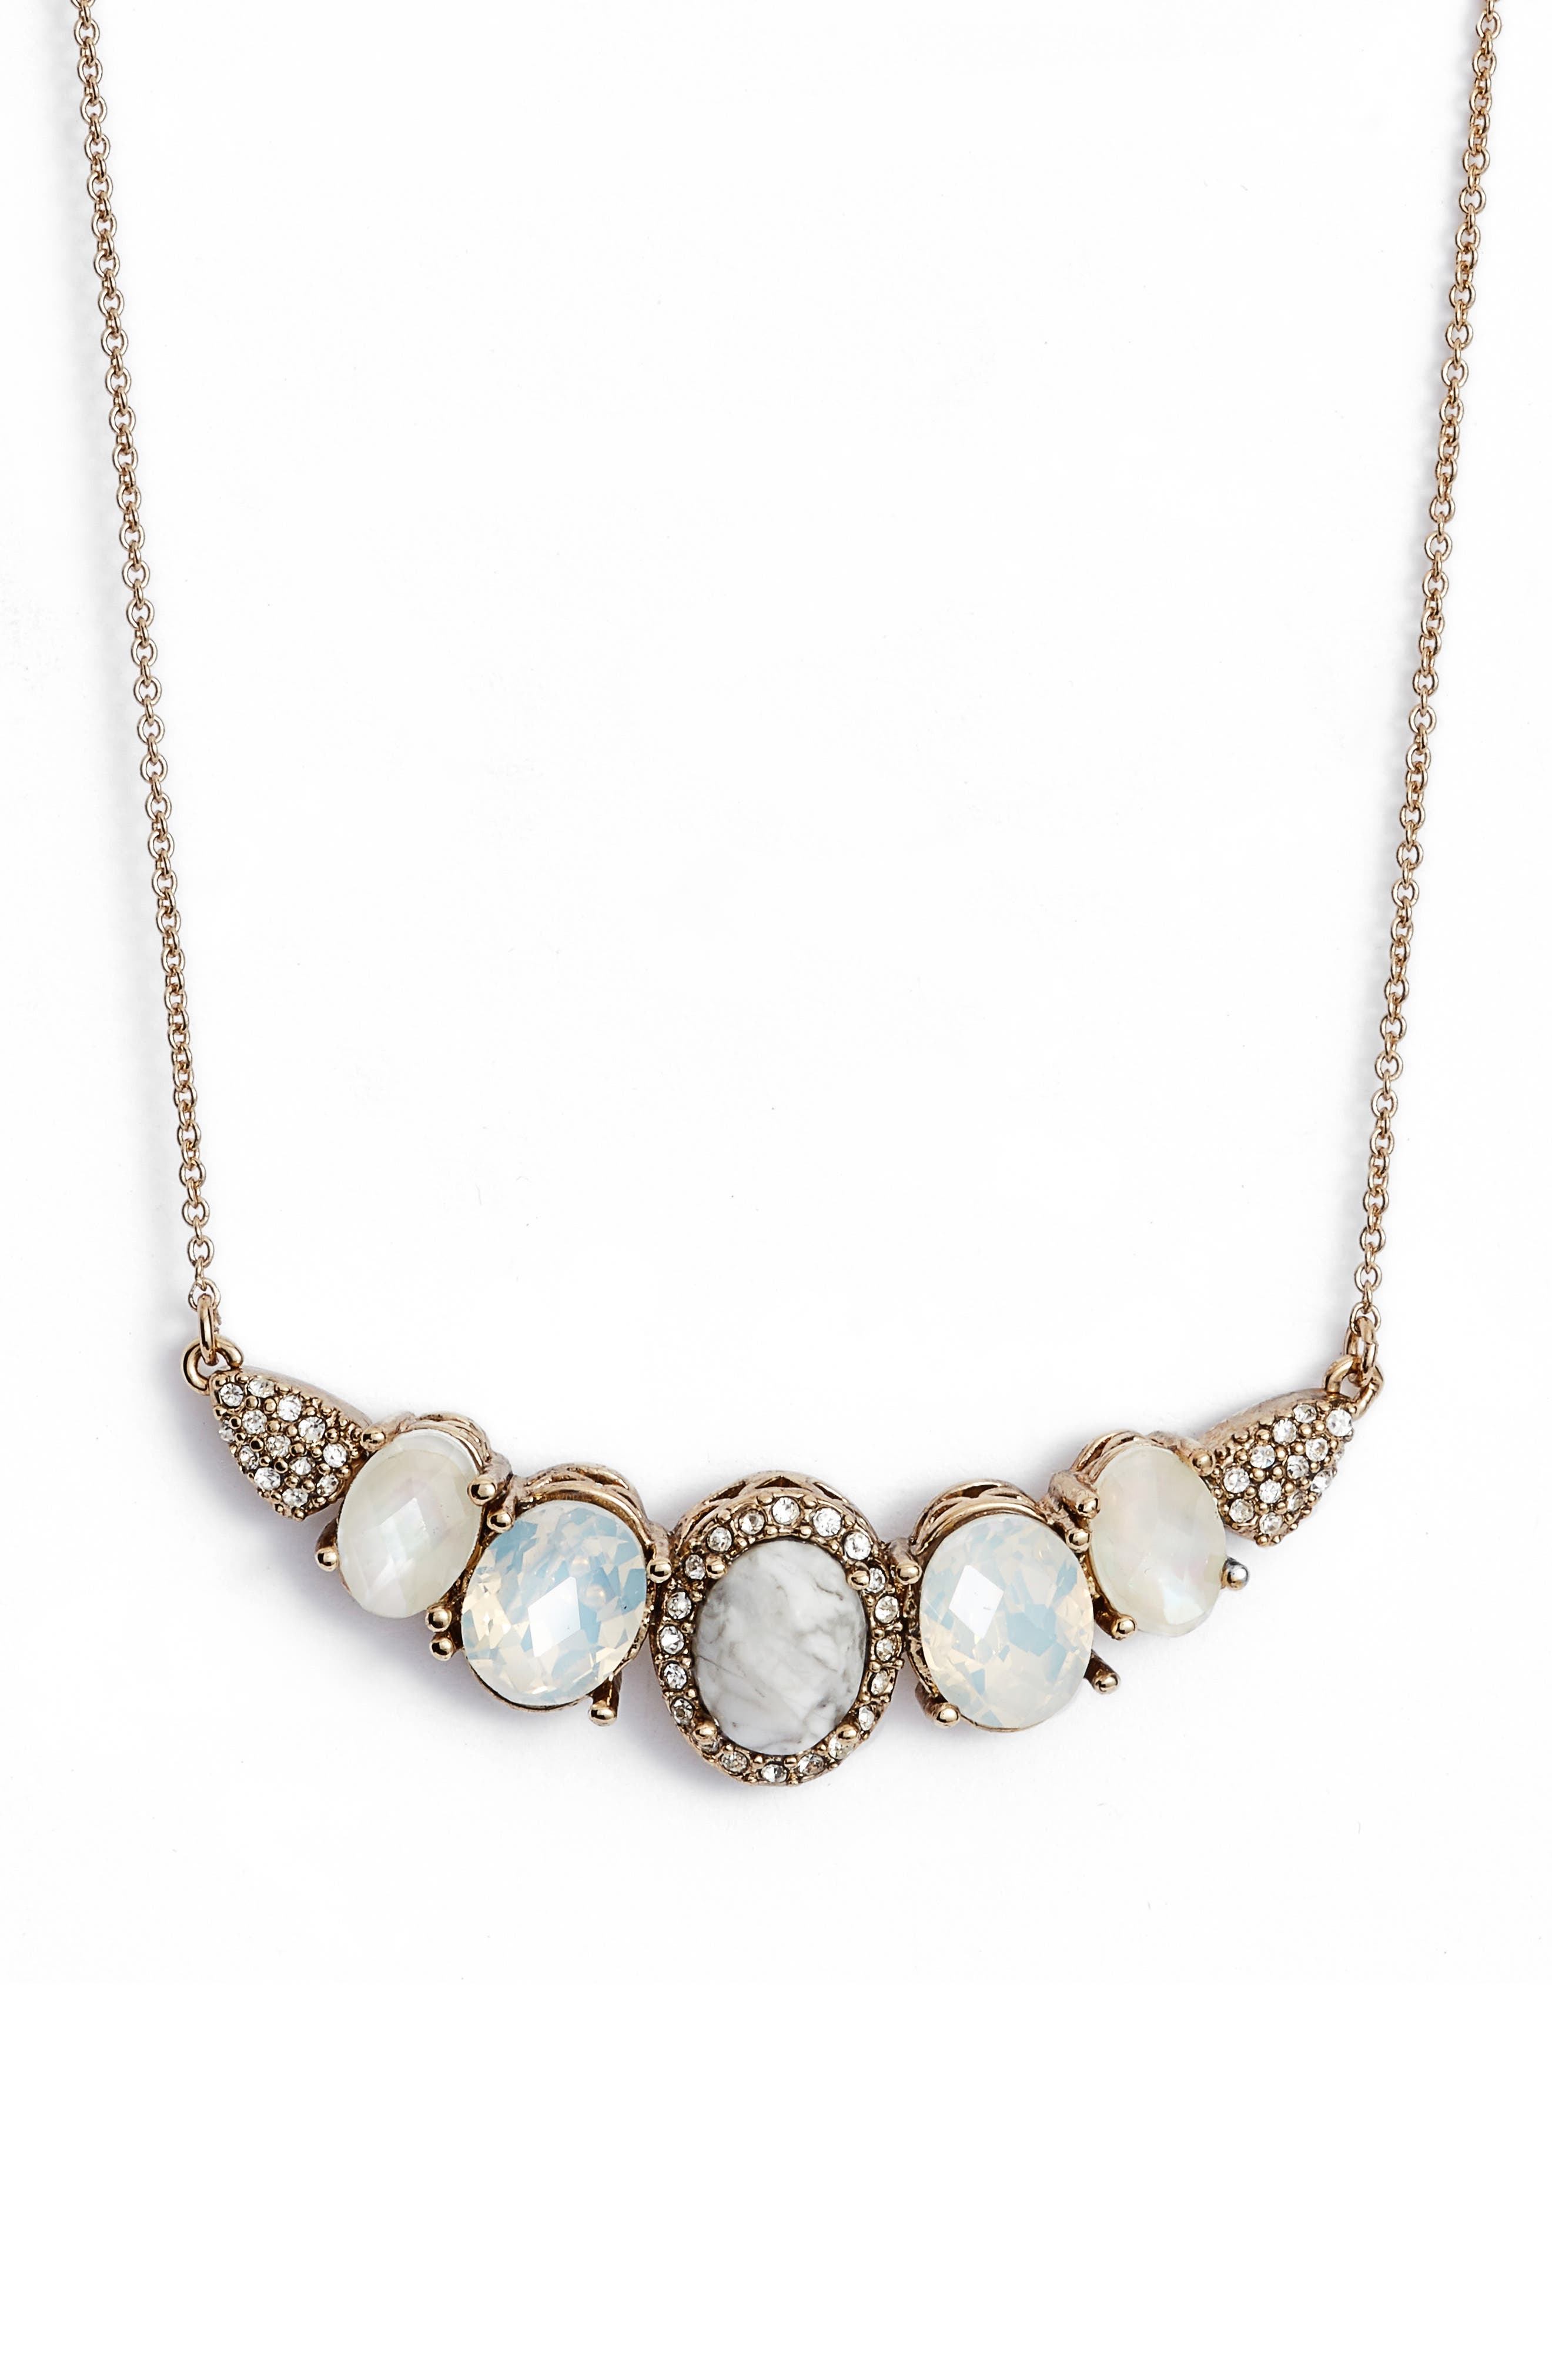 Wanderlust Frontal Necklace,                             Main thumbnail 1, color,                             Gold/ White Multi